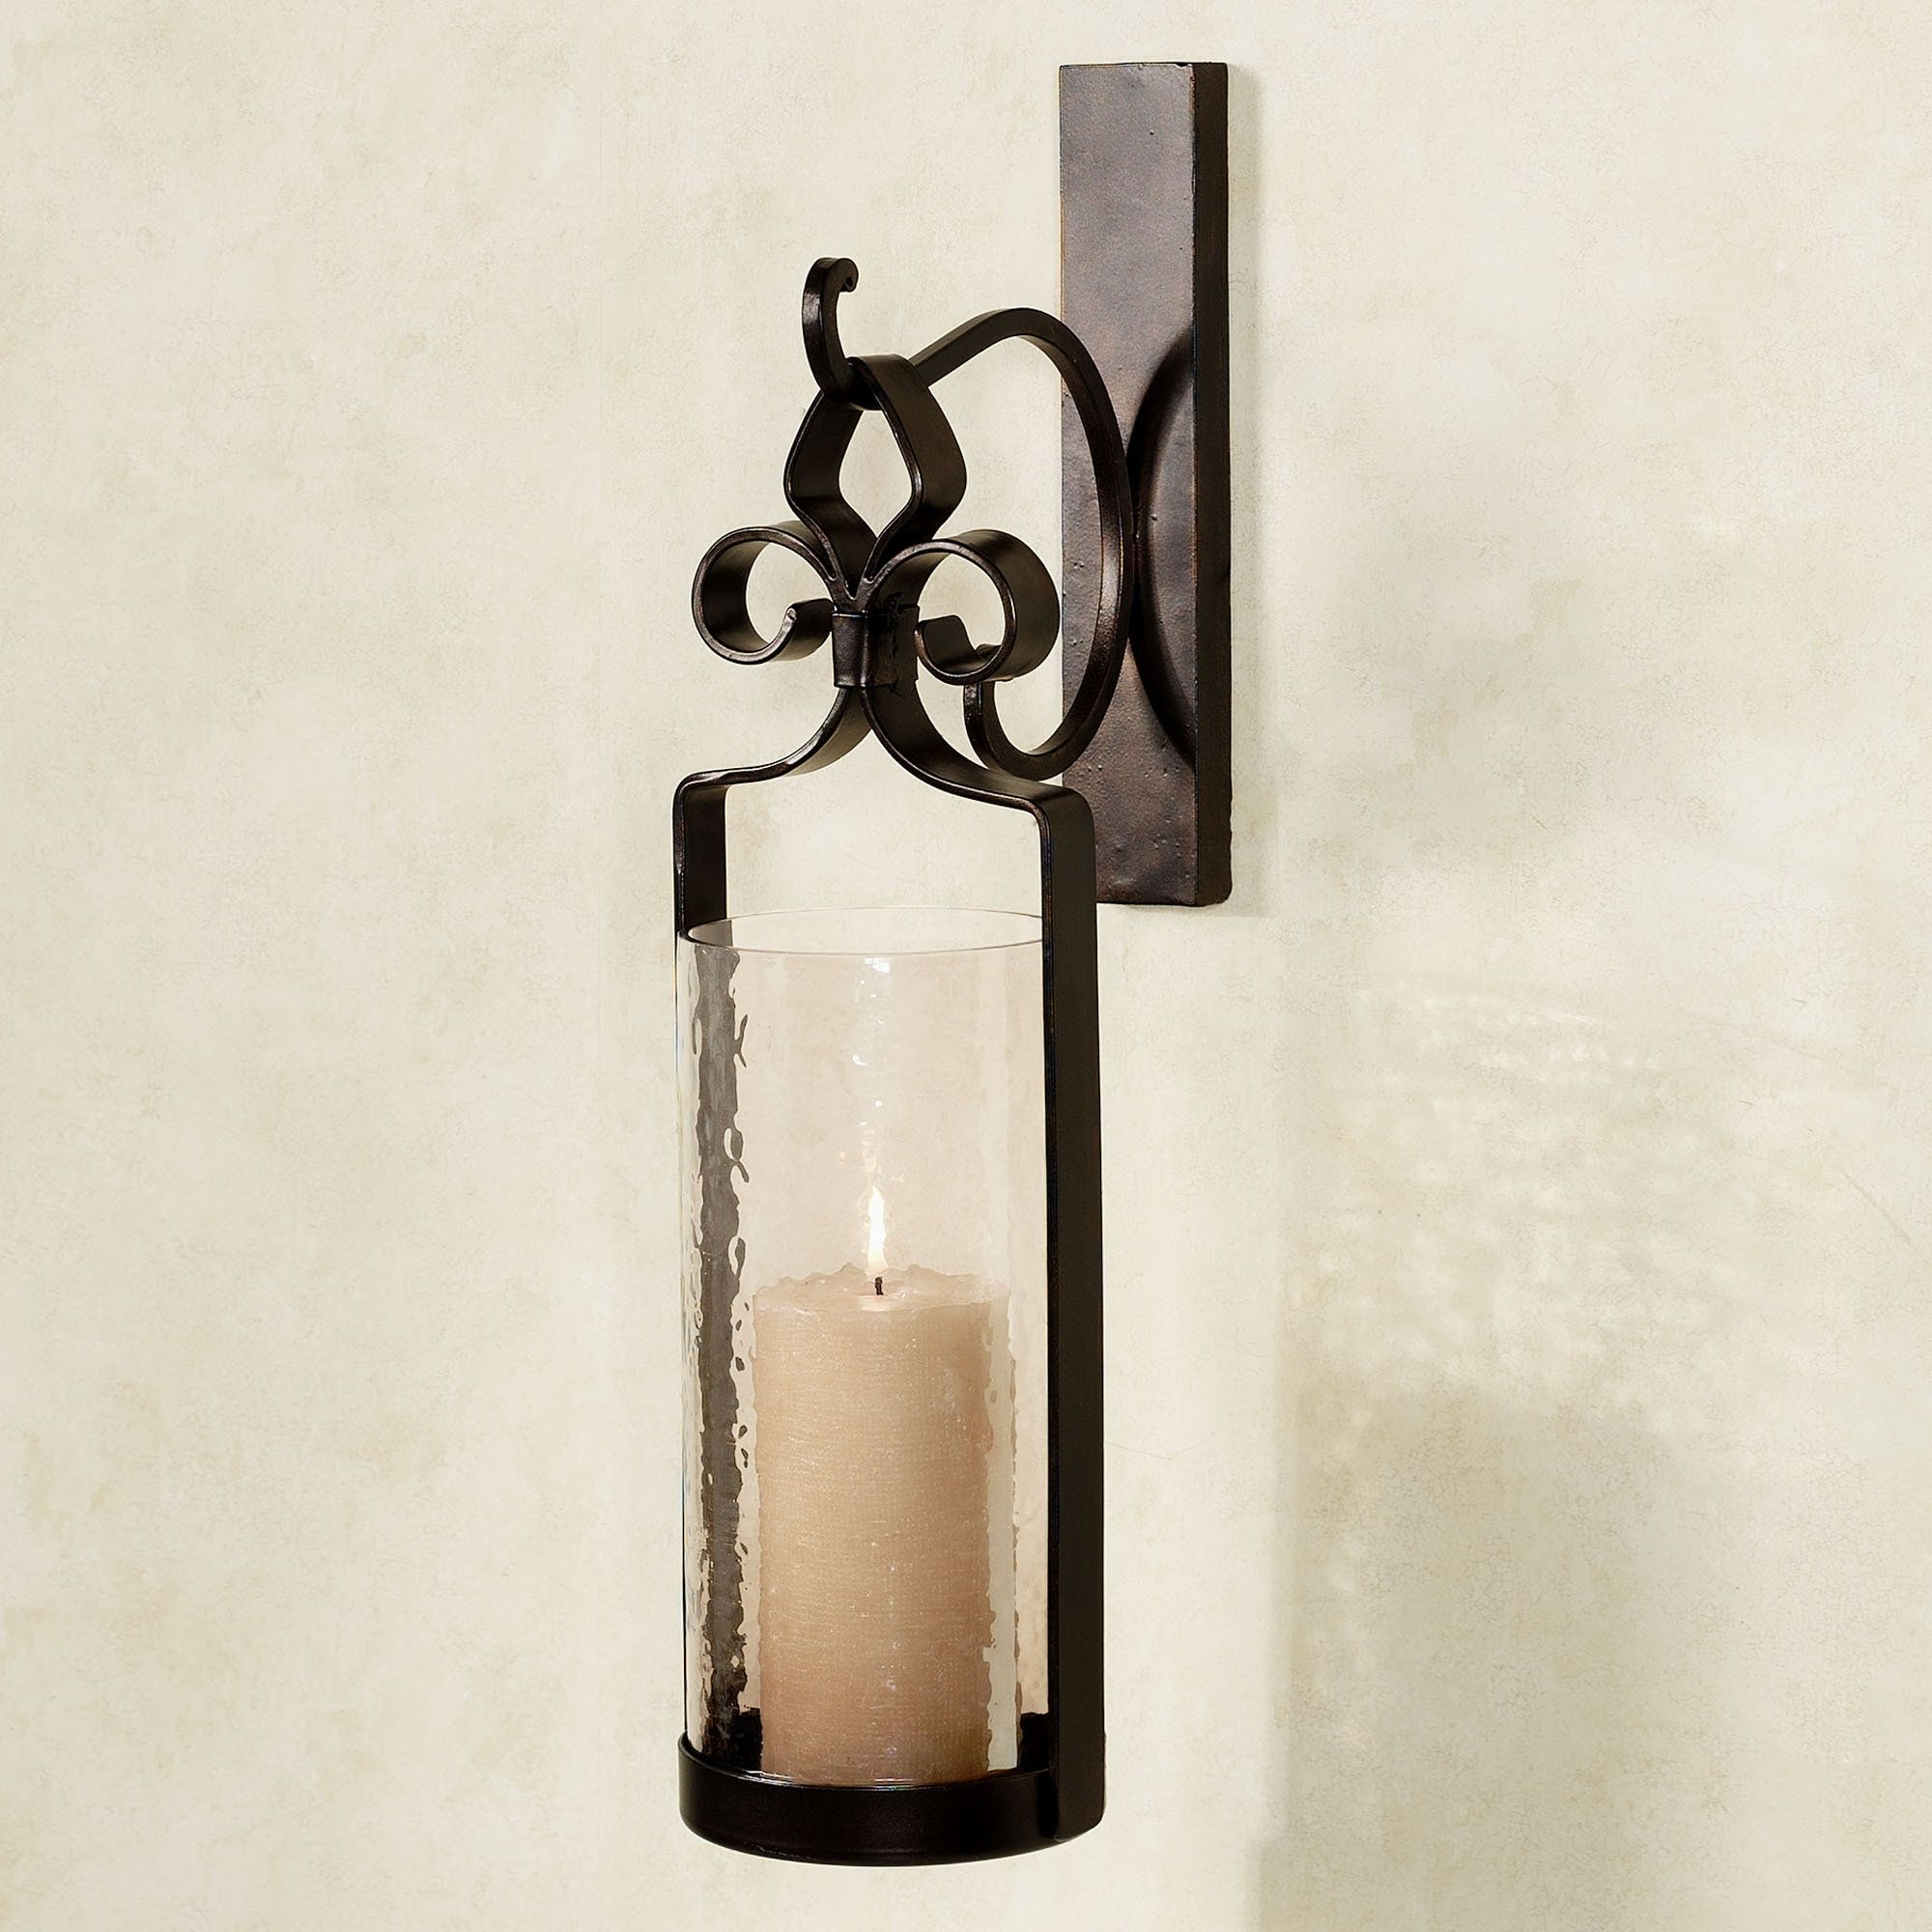 Wall Sconces Candle Full Image For Mirror Wall Sconce Candle Inside Measuremen Wrought Iron Candle Sconces Candle Wall Sconces Wrought Iron Candle Wall Sconces